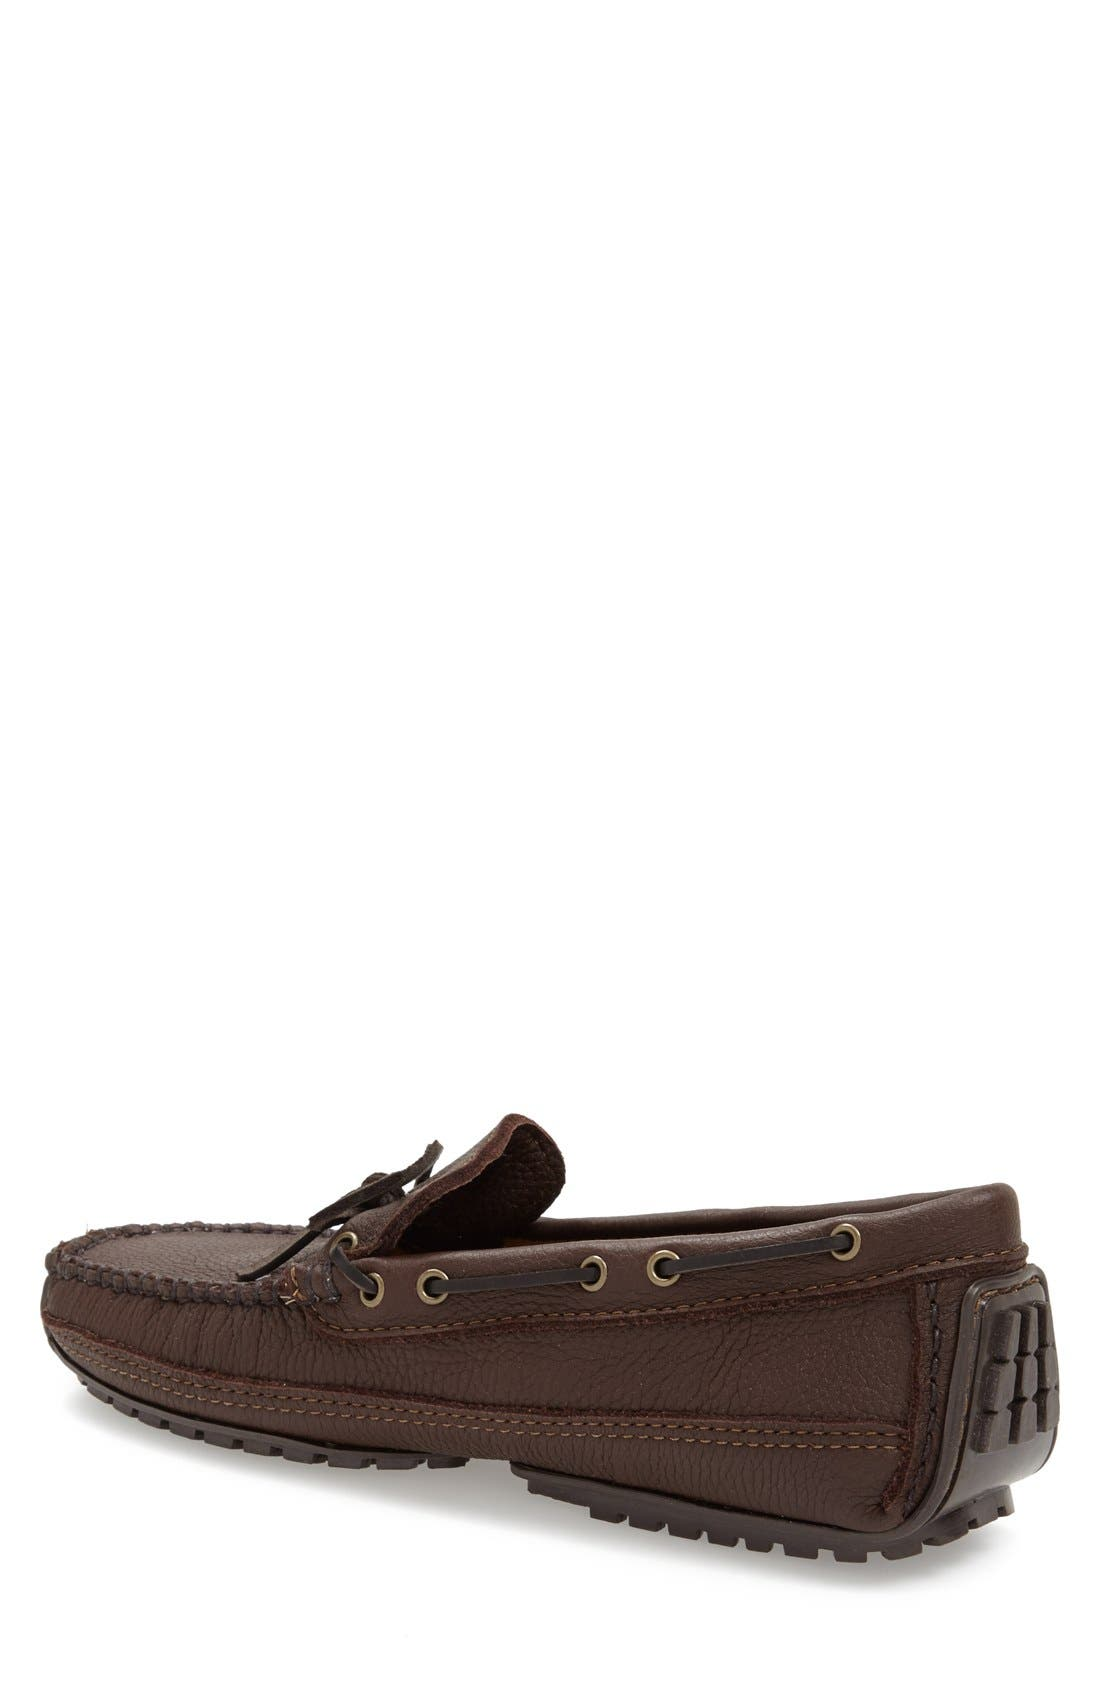 Moosehide Moccasin,                             Alternate thumbnail 4, color,                             CHOCOLATE